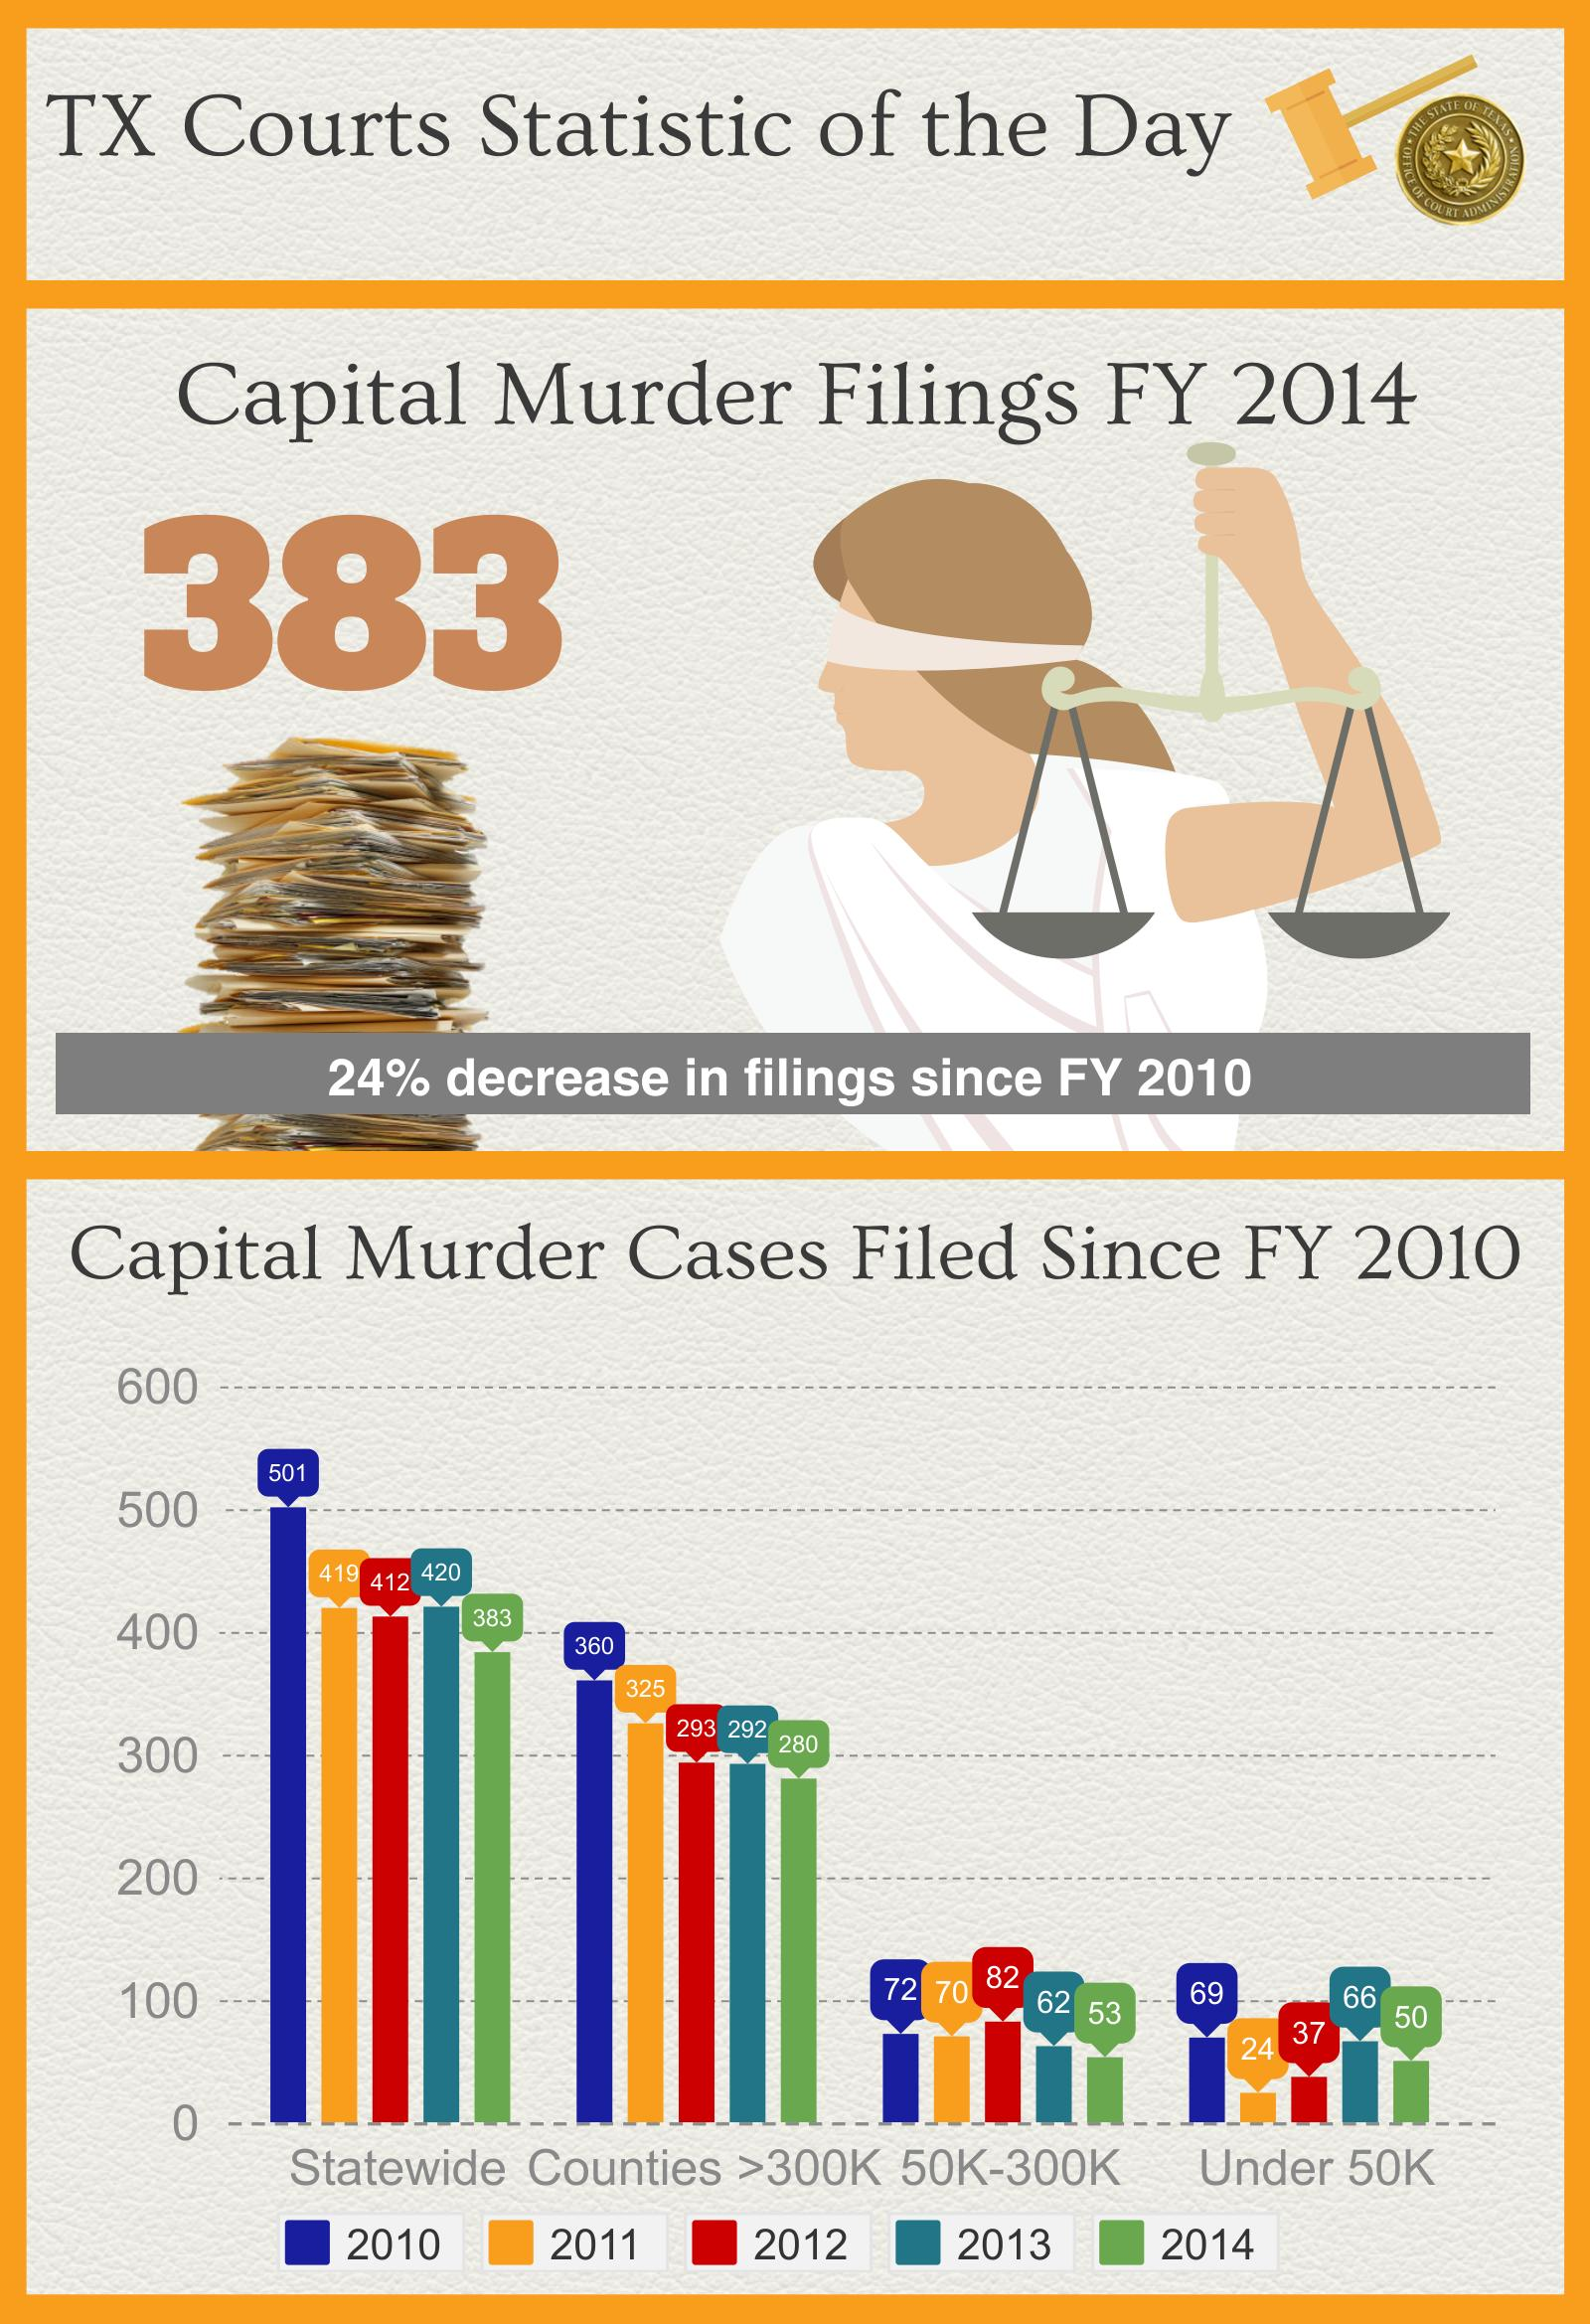 Grits for breakfast february 2015 the number of capital murder cases filed in 2014 383 was nvjuhfo Image collections